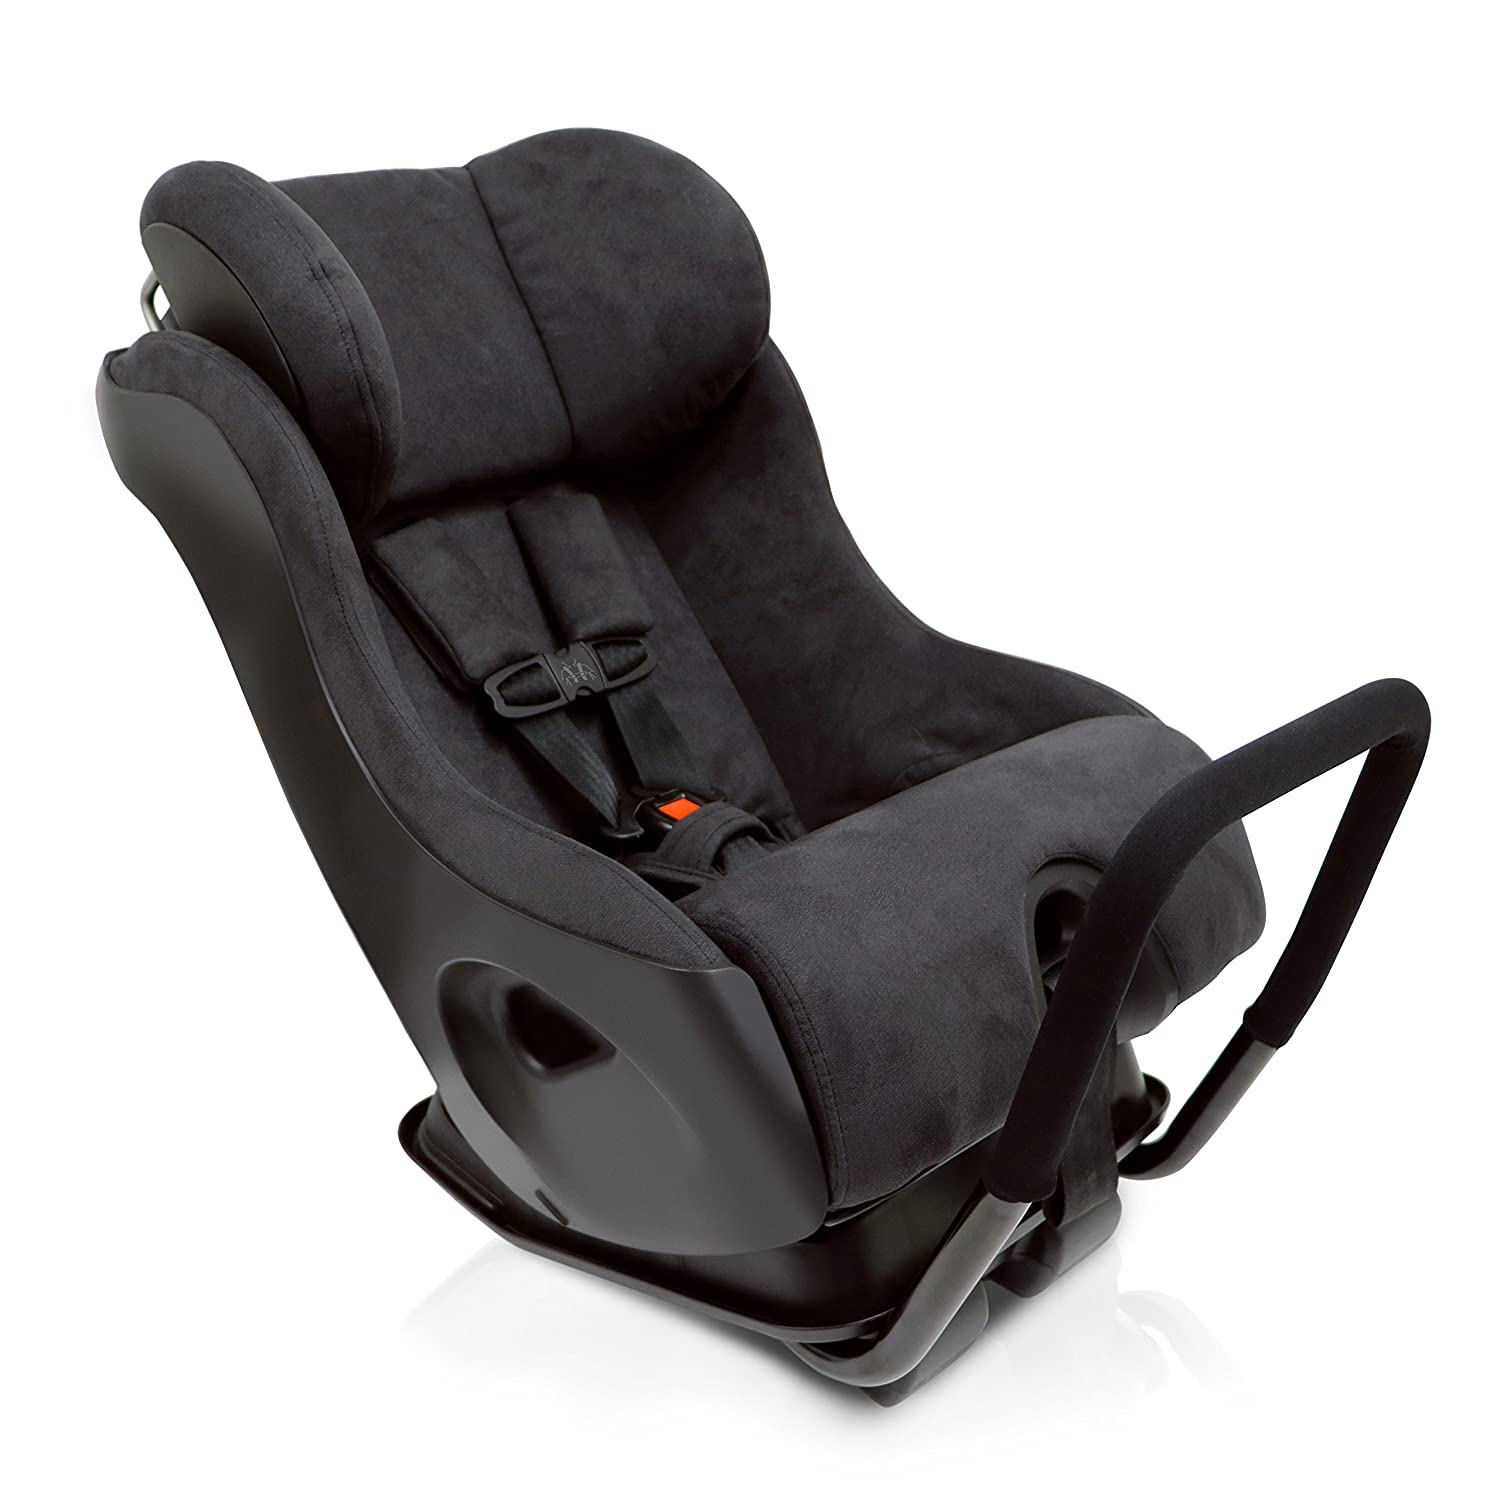 Top 9 Best Convertible Car Seat for Newborns 2020 4